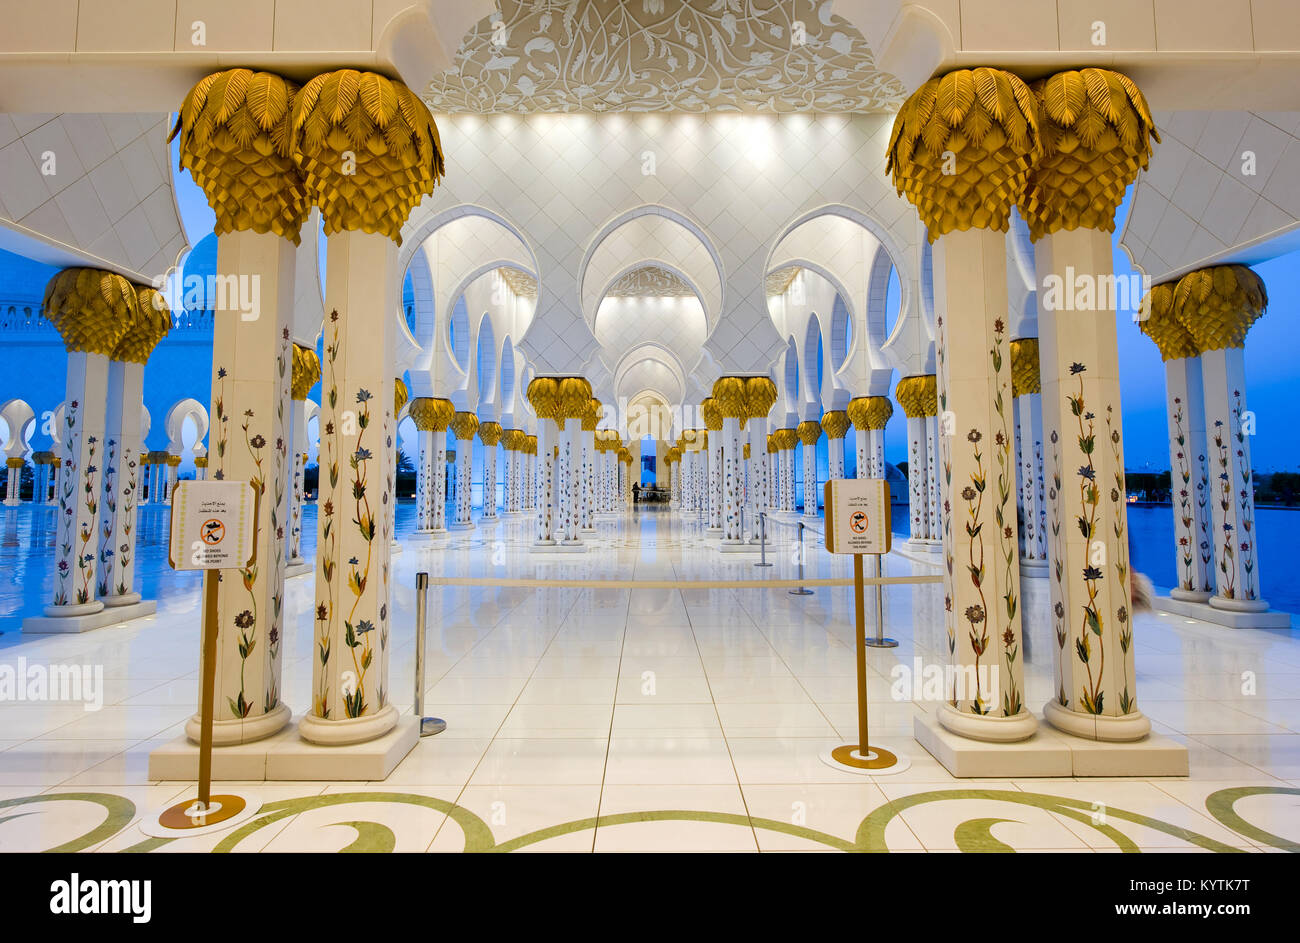 ABU DHABI, UNITED ARAB EMIRATES - DEC 31, 2017: Part of the interior of the Sheikh Zayed Mosque in Abu Dhabi in - Stock Image